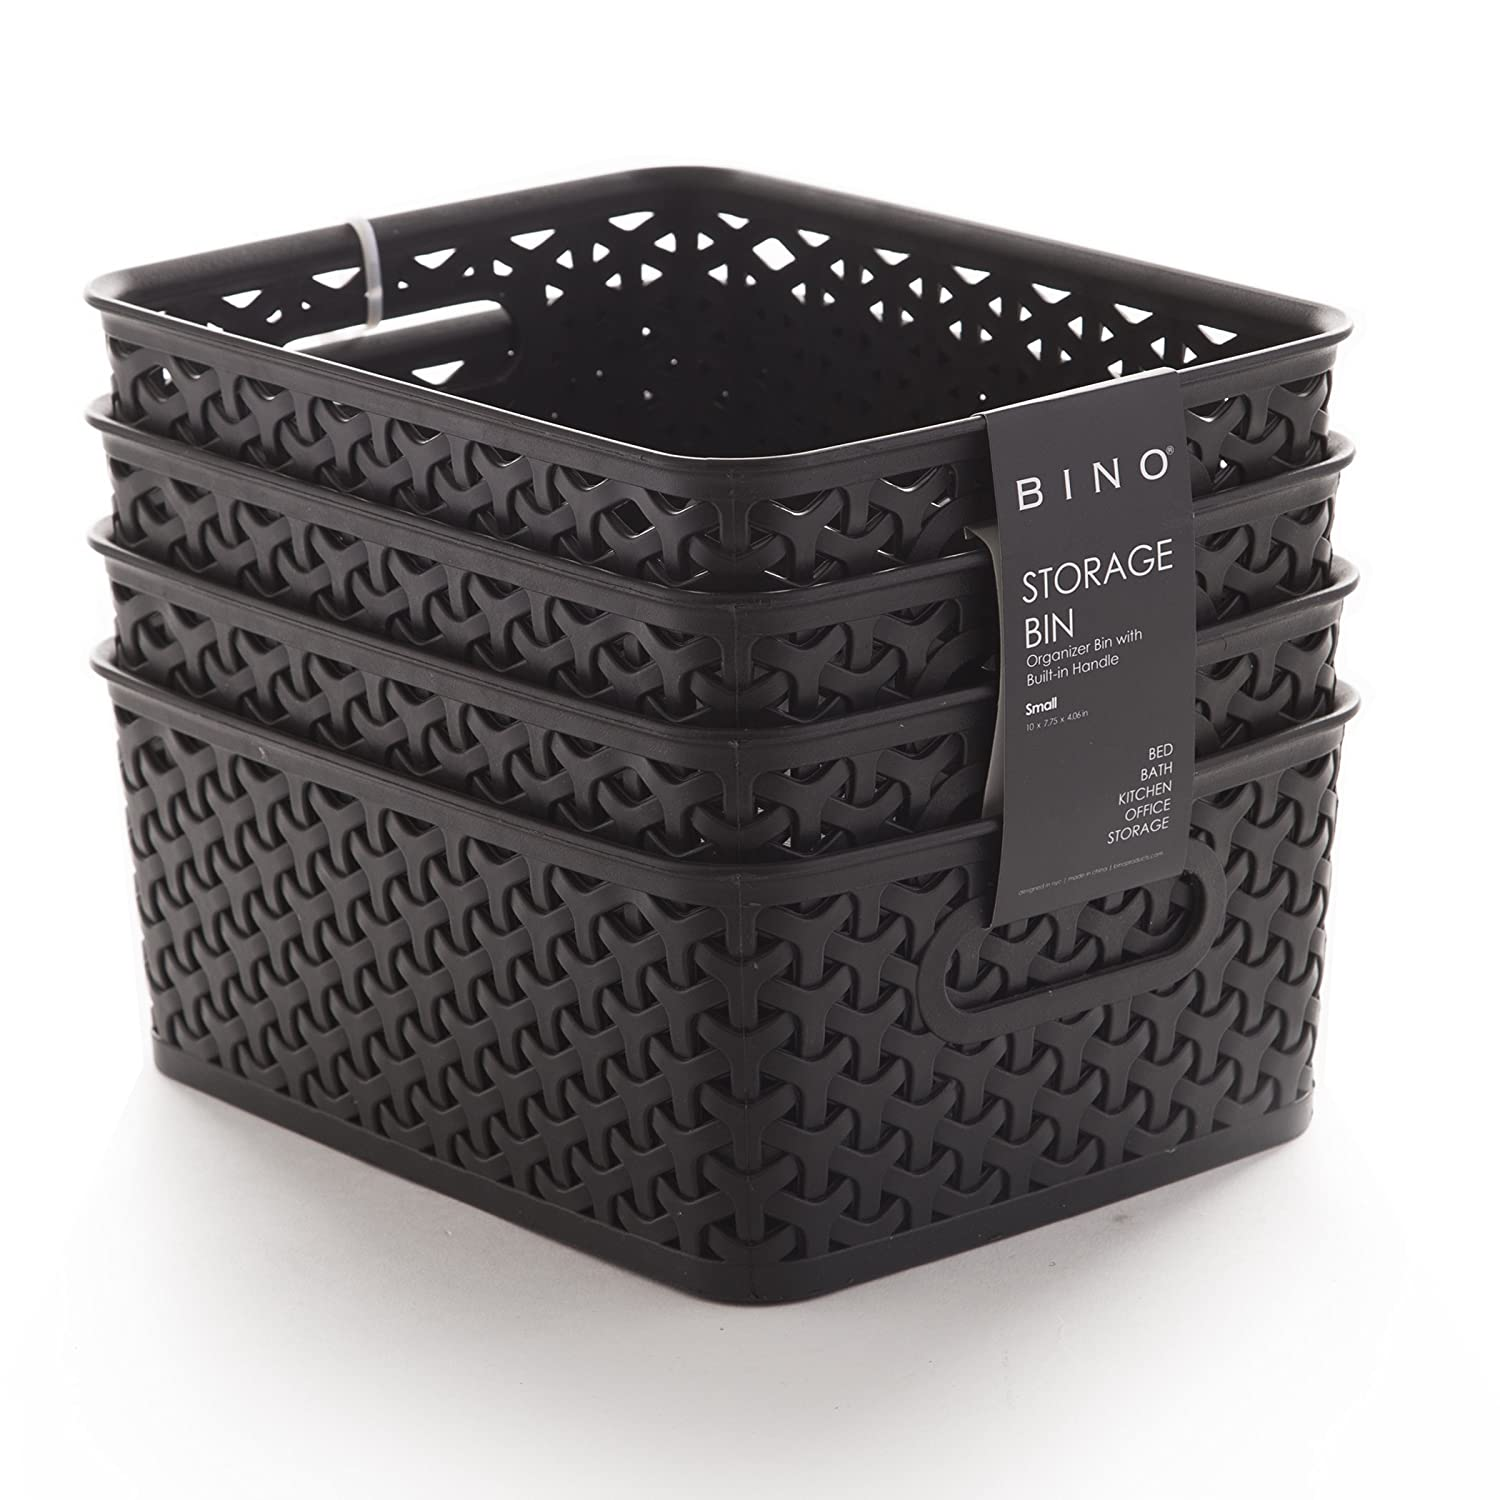 BINO Woven Plastic Storage Basket, Large – 2 Pack (Black) Large – 2 Pack (Black) 11044-BLK